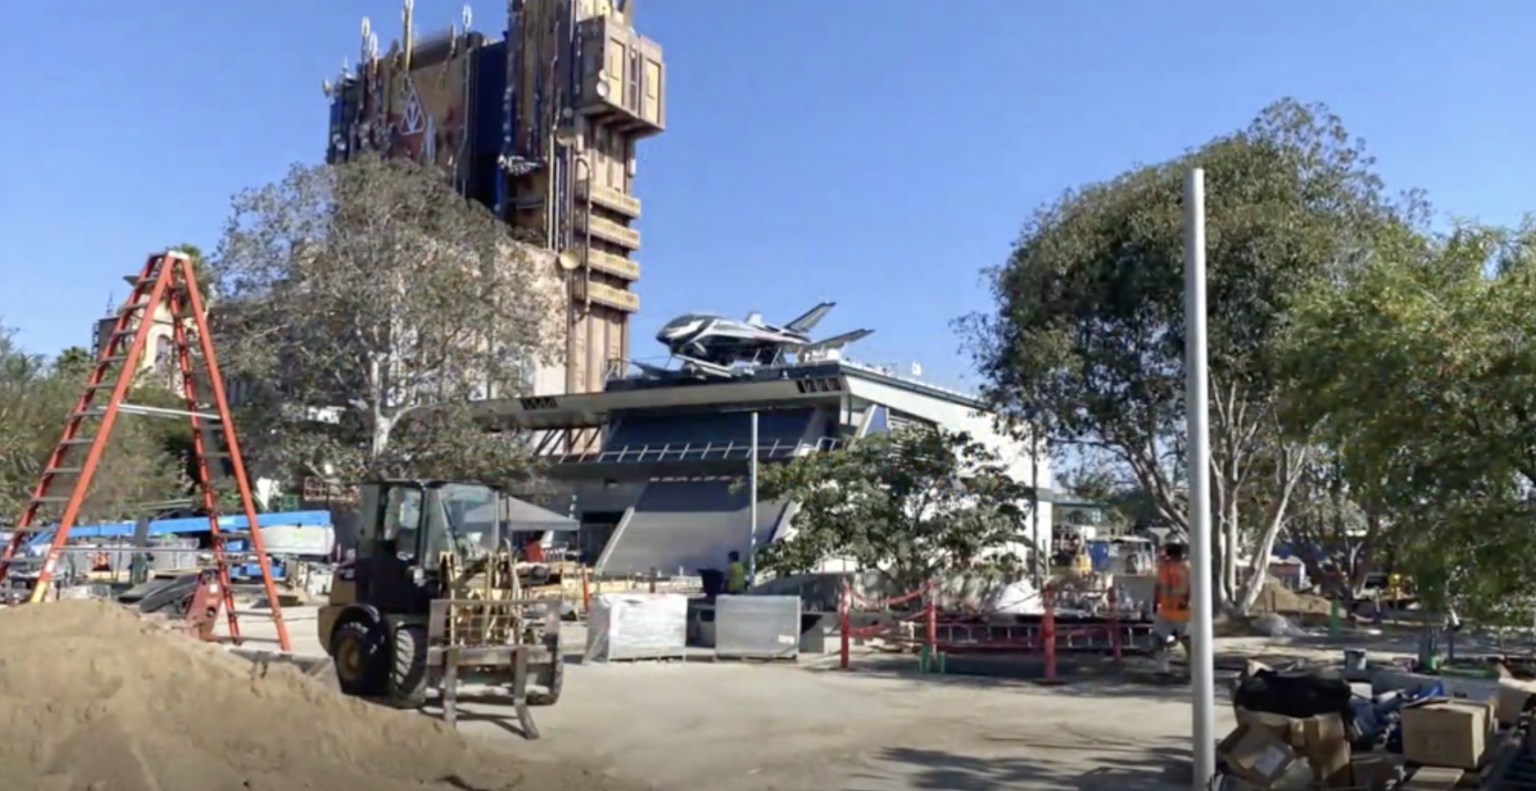 PHOTOS: Check Out the Construction Progress on Avengers ...